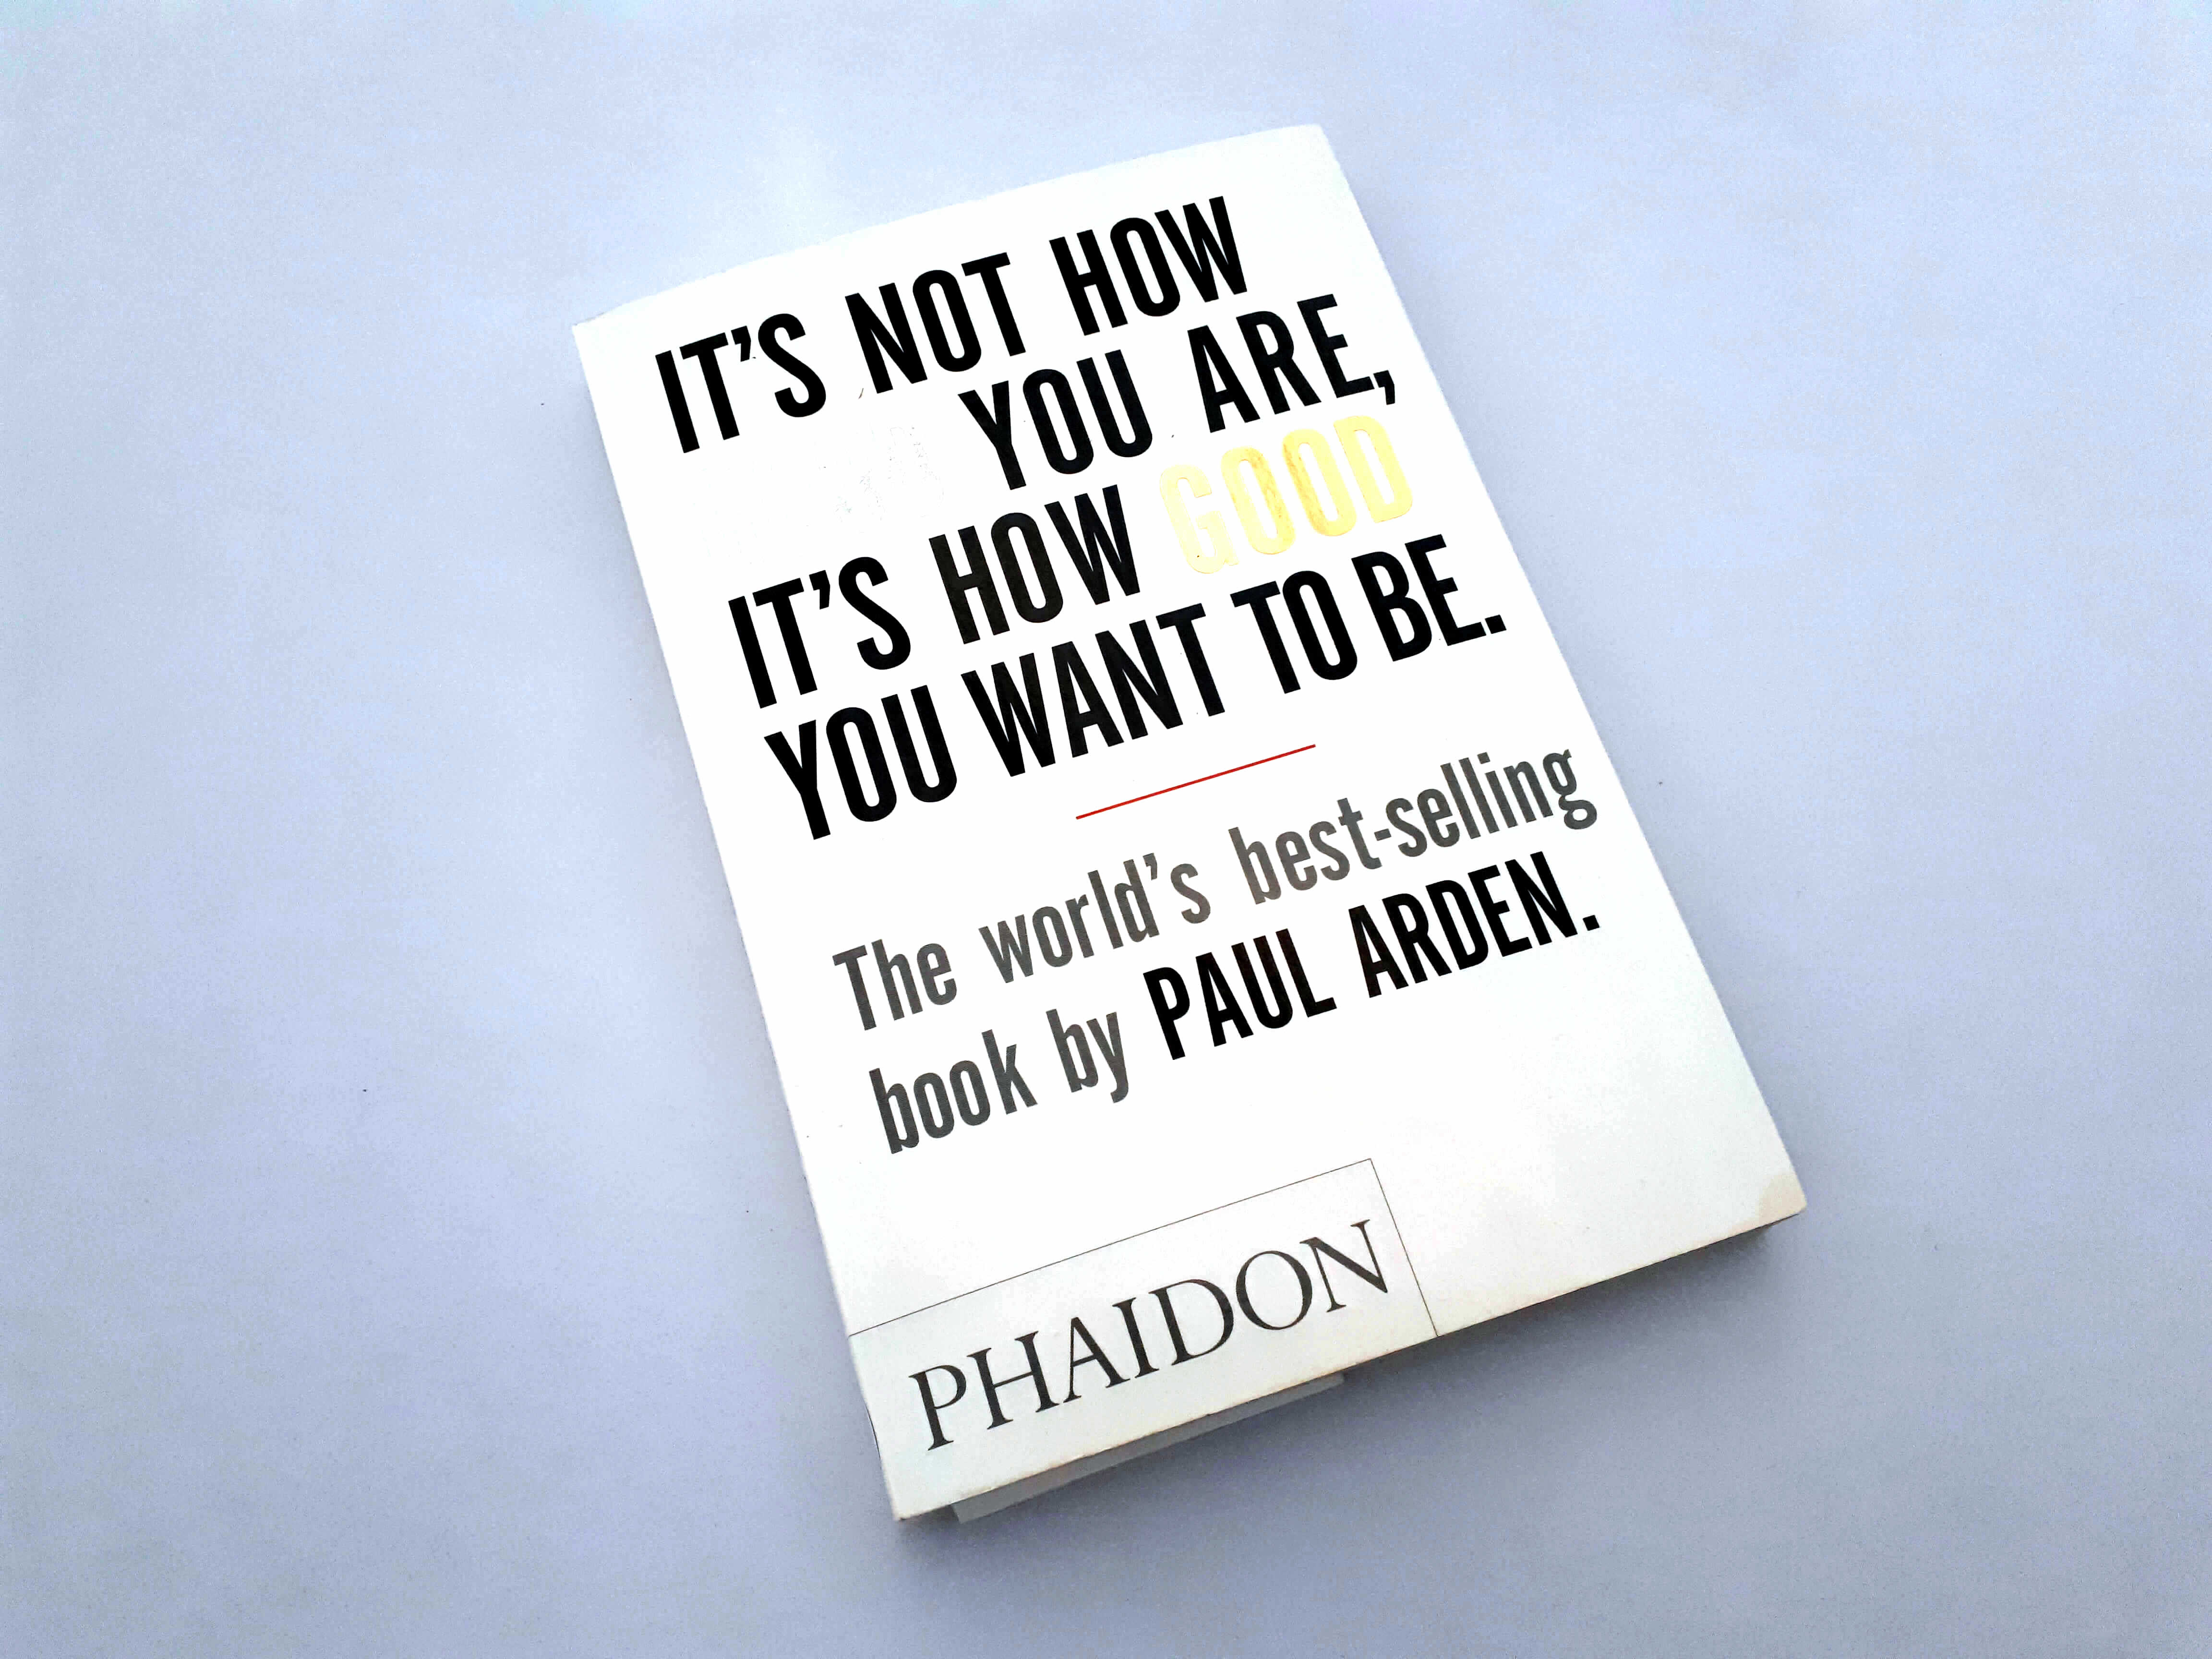 It's Not How Good You Are, its How Good You Want To Be by Paul Arden